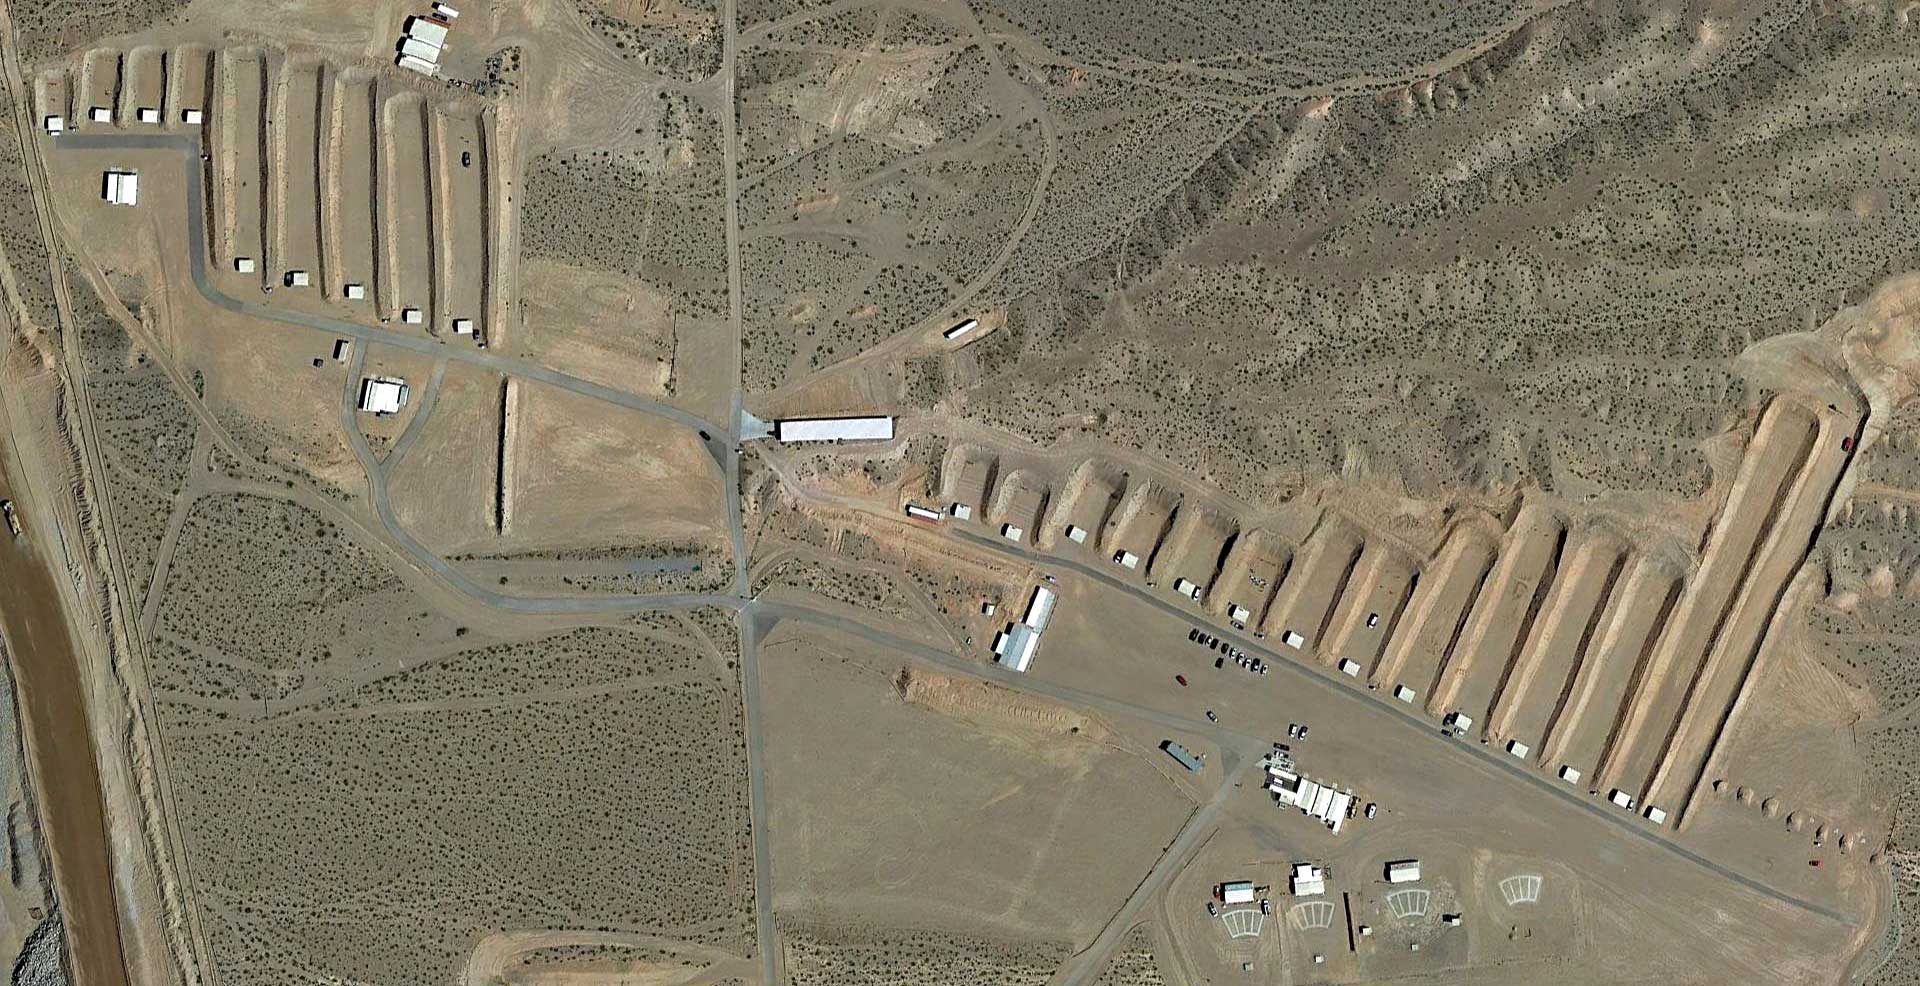 BRPC Range - Satellite View